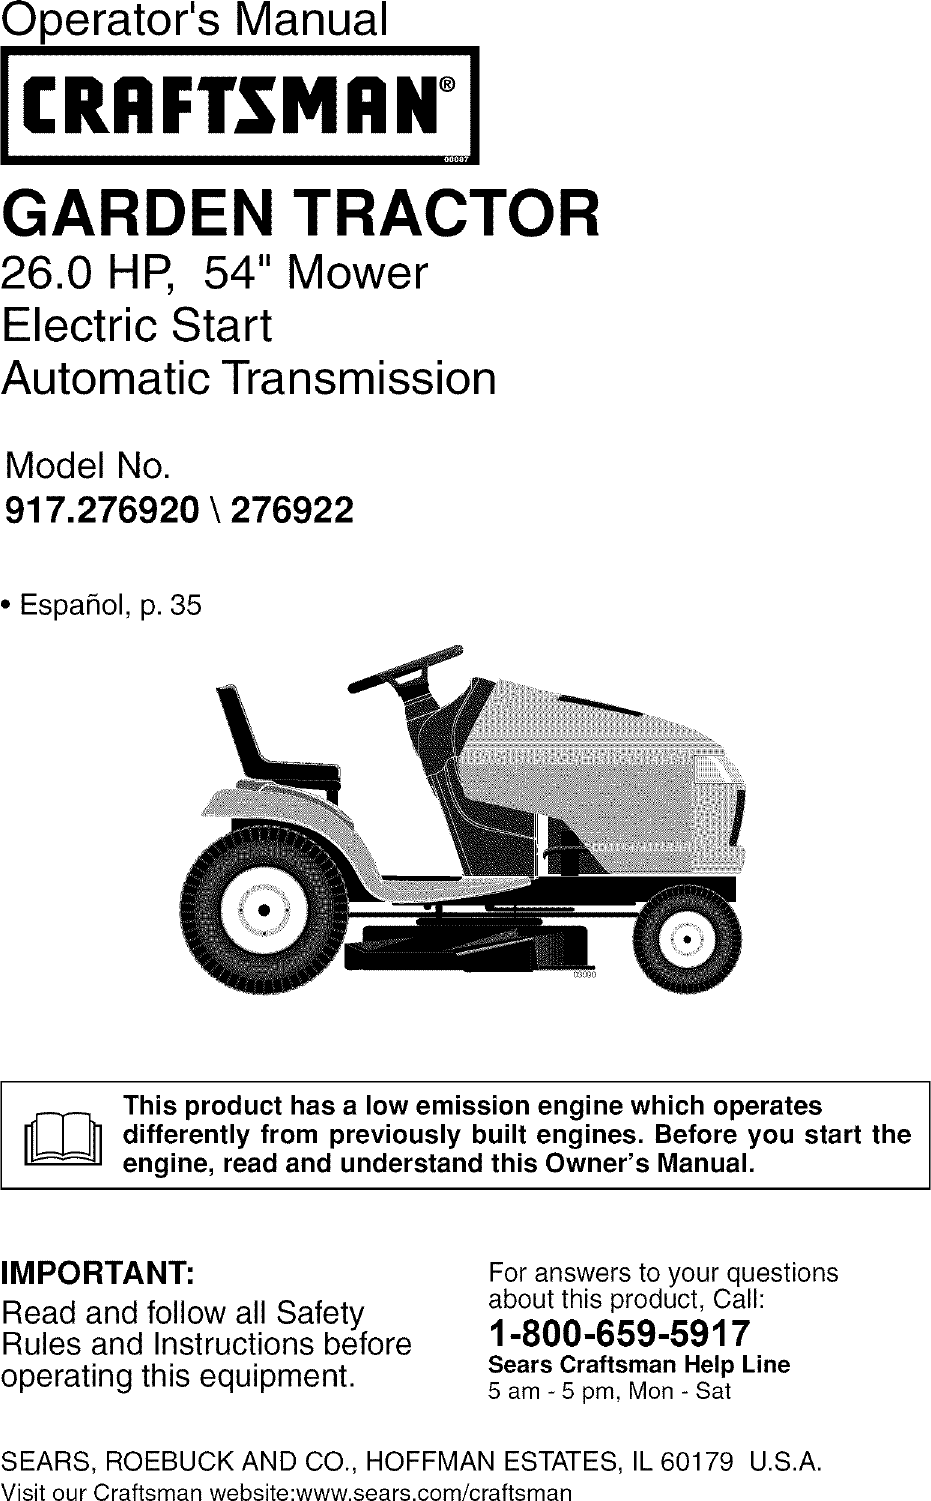 hight resolution of wiring diagram for craftsman 917 276922 riding lawn mower wiring wiring diagram craftsman 917 287480